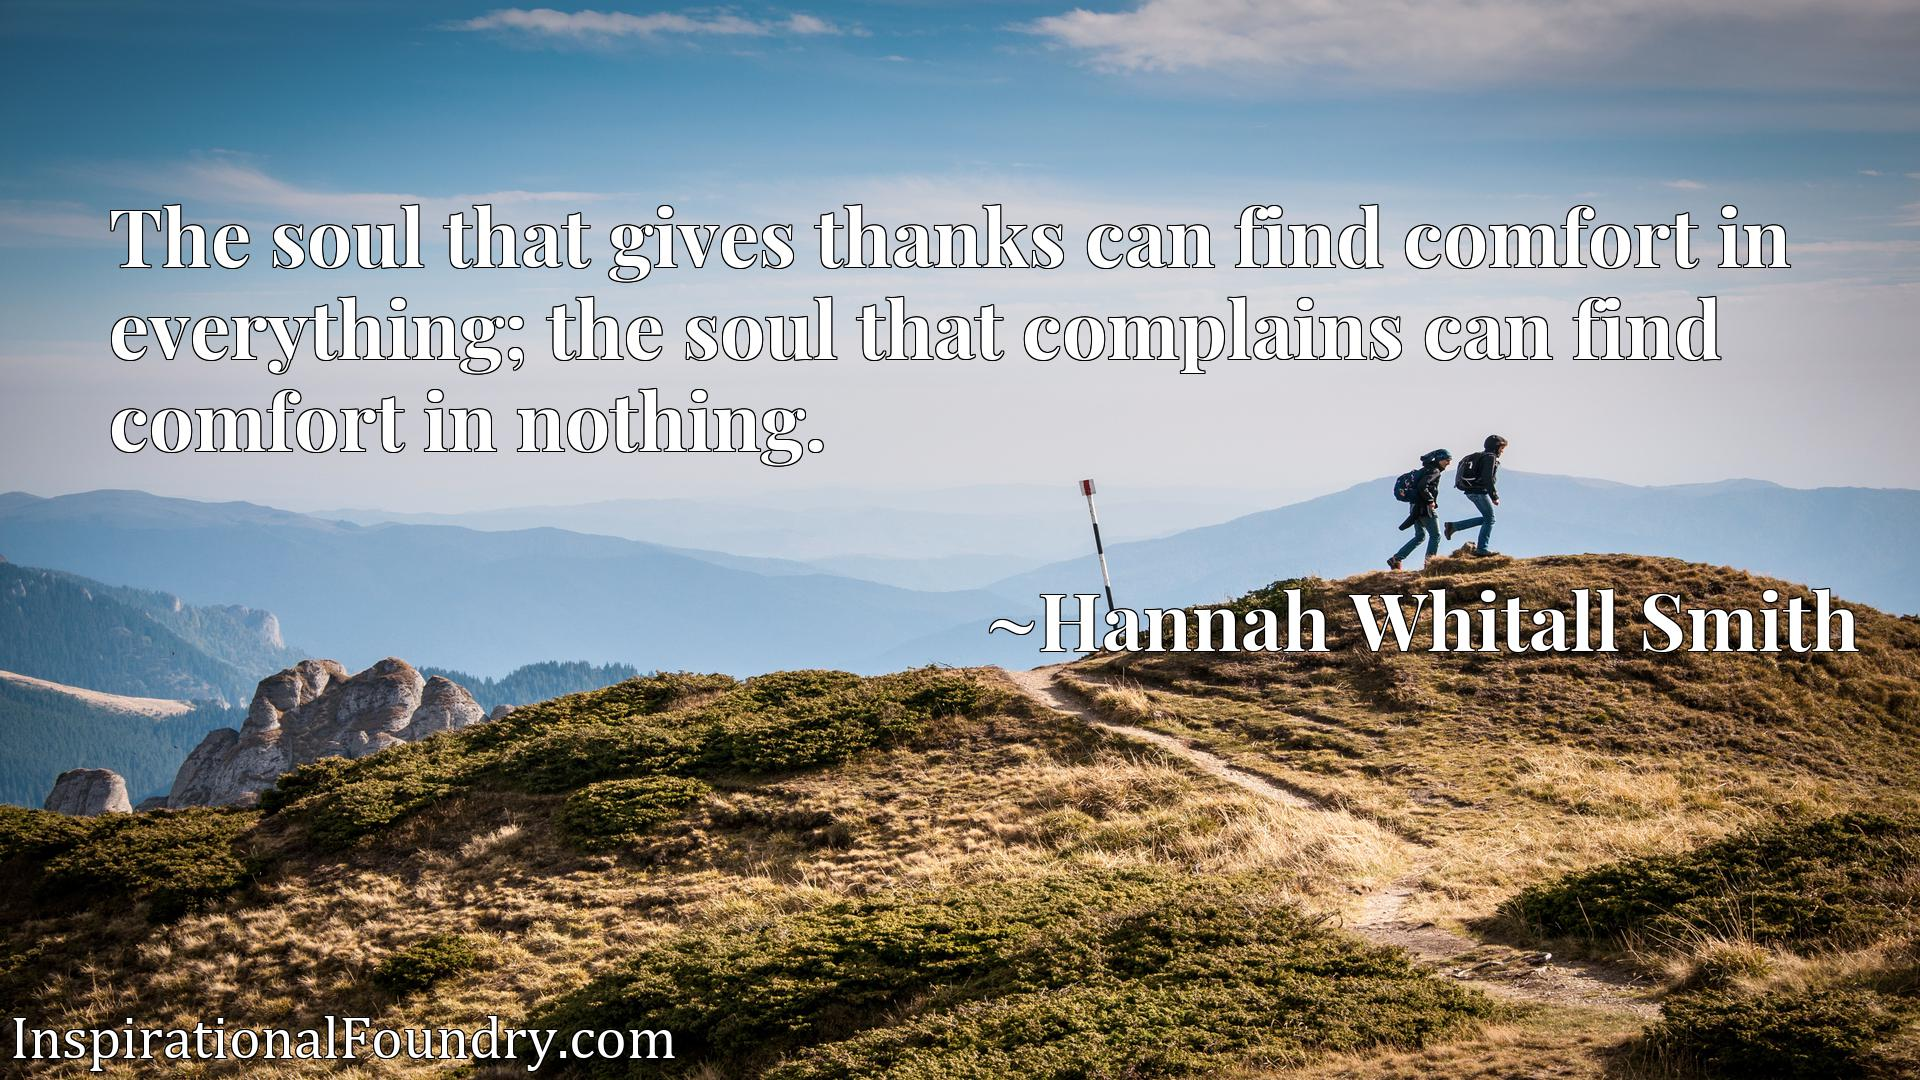 The soul that gives thanks can find comfort in everything; the soul that complains can find comfort in nothing.